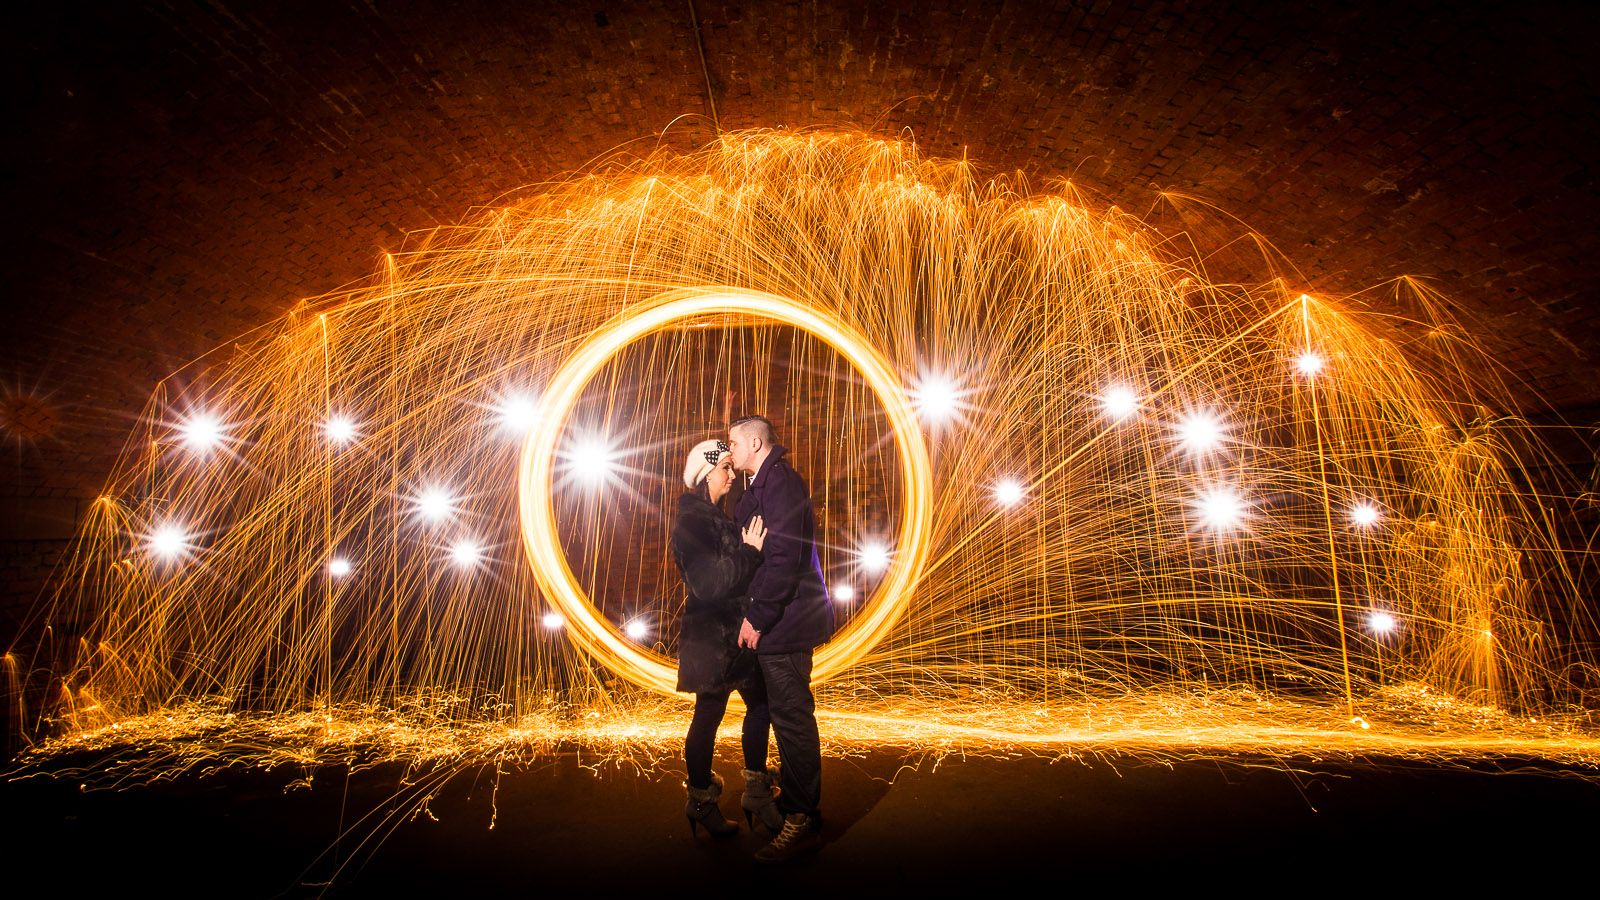 Light Painting Fun and Games! » Frank Wood Photography Wedding ... for Light Painting Photography Wedding  585hul